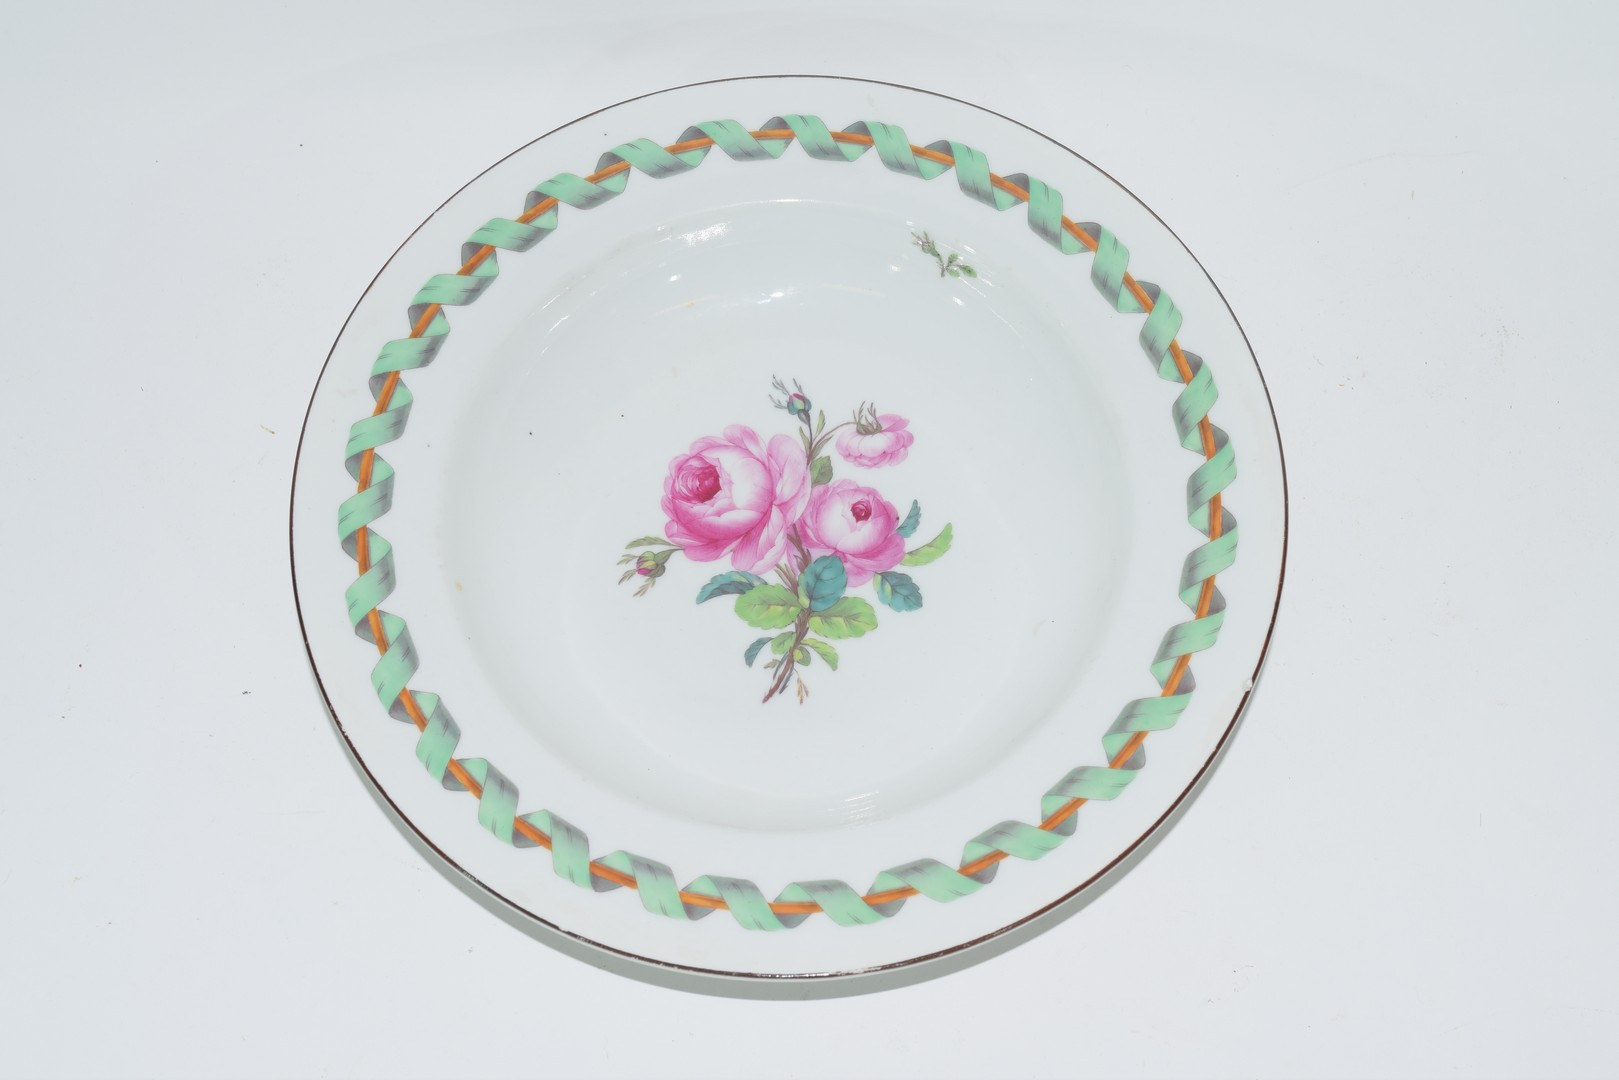 Berlin porcelain bowl decorated with central spray of roses - Image 2 of 3